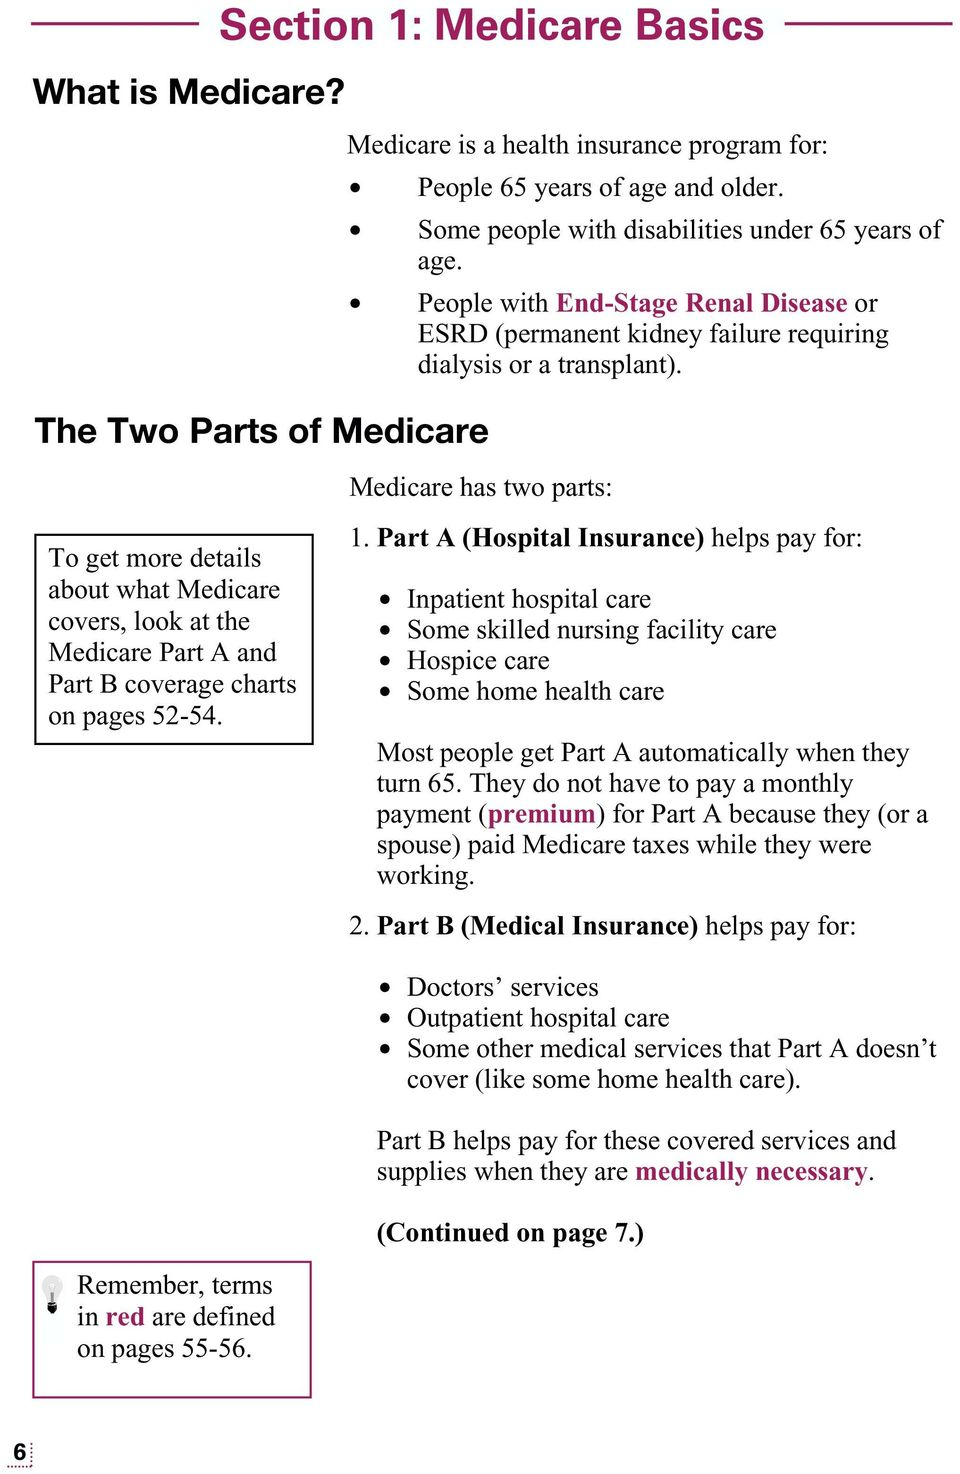 Medicare has two parts: To get more details about what Medicare covers, look at the Medicare Part A and Part B coverage charts on pages 52-54. 1.